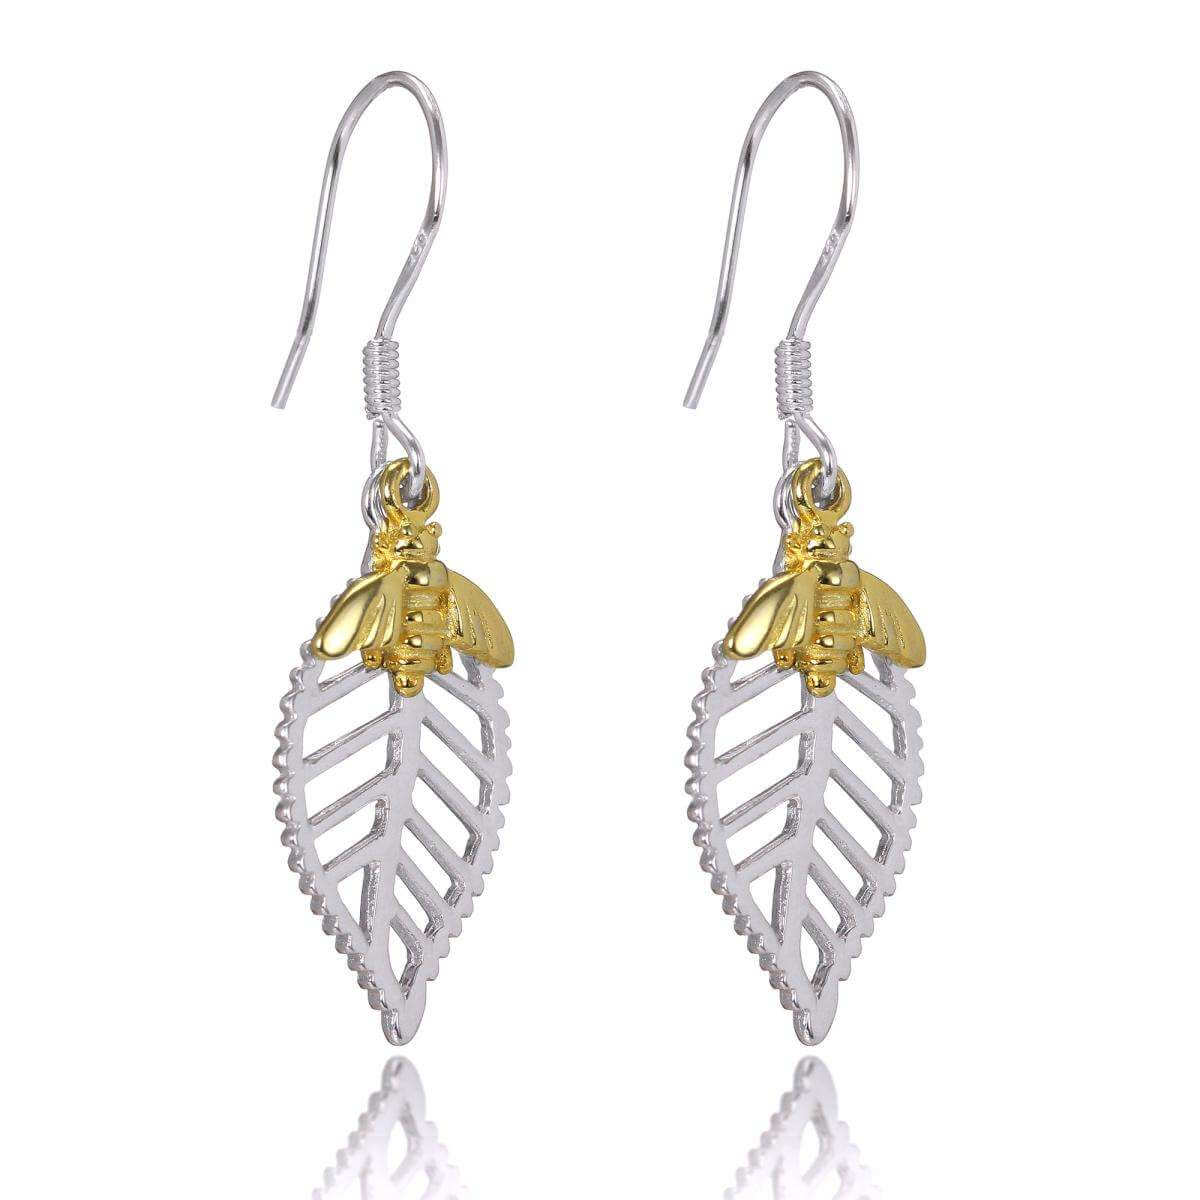 Abella Bee Earrings in Sterling Silver & Plated Gold